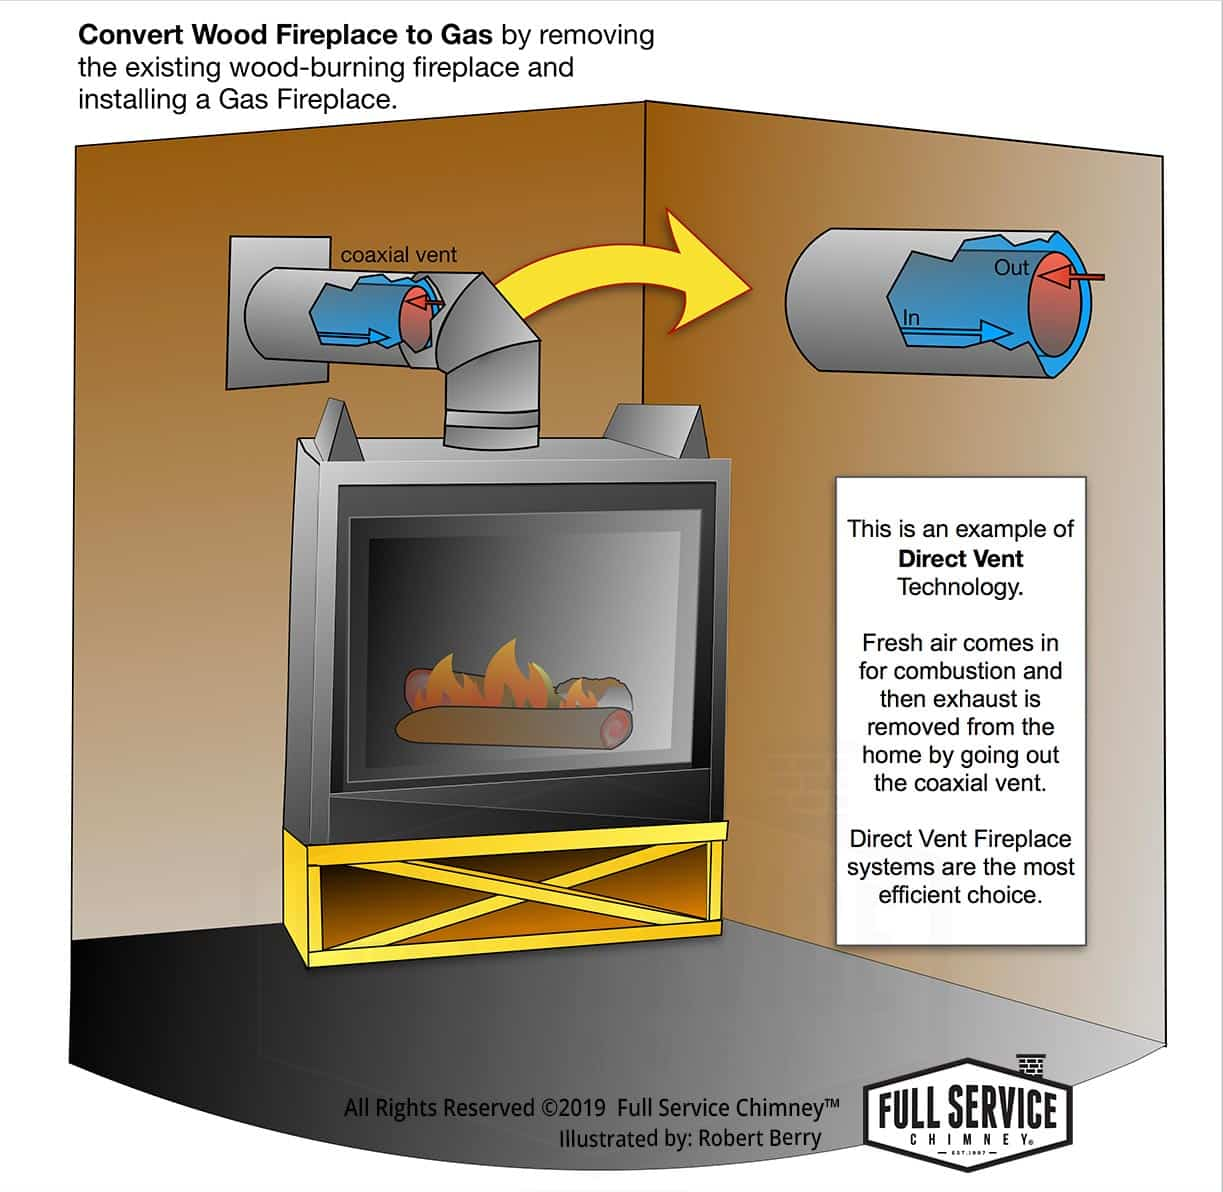 Convert Wood Fireplace to Gas Infographic